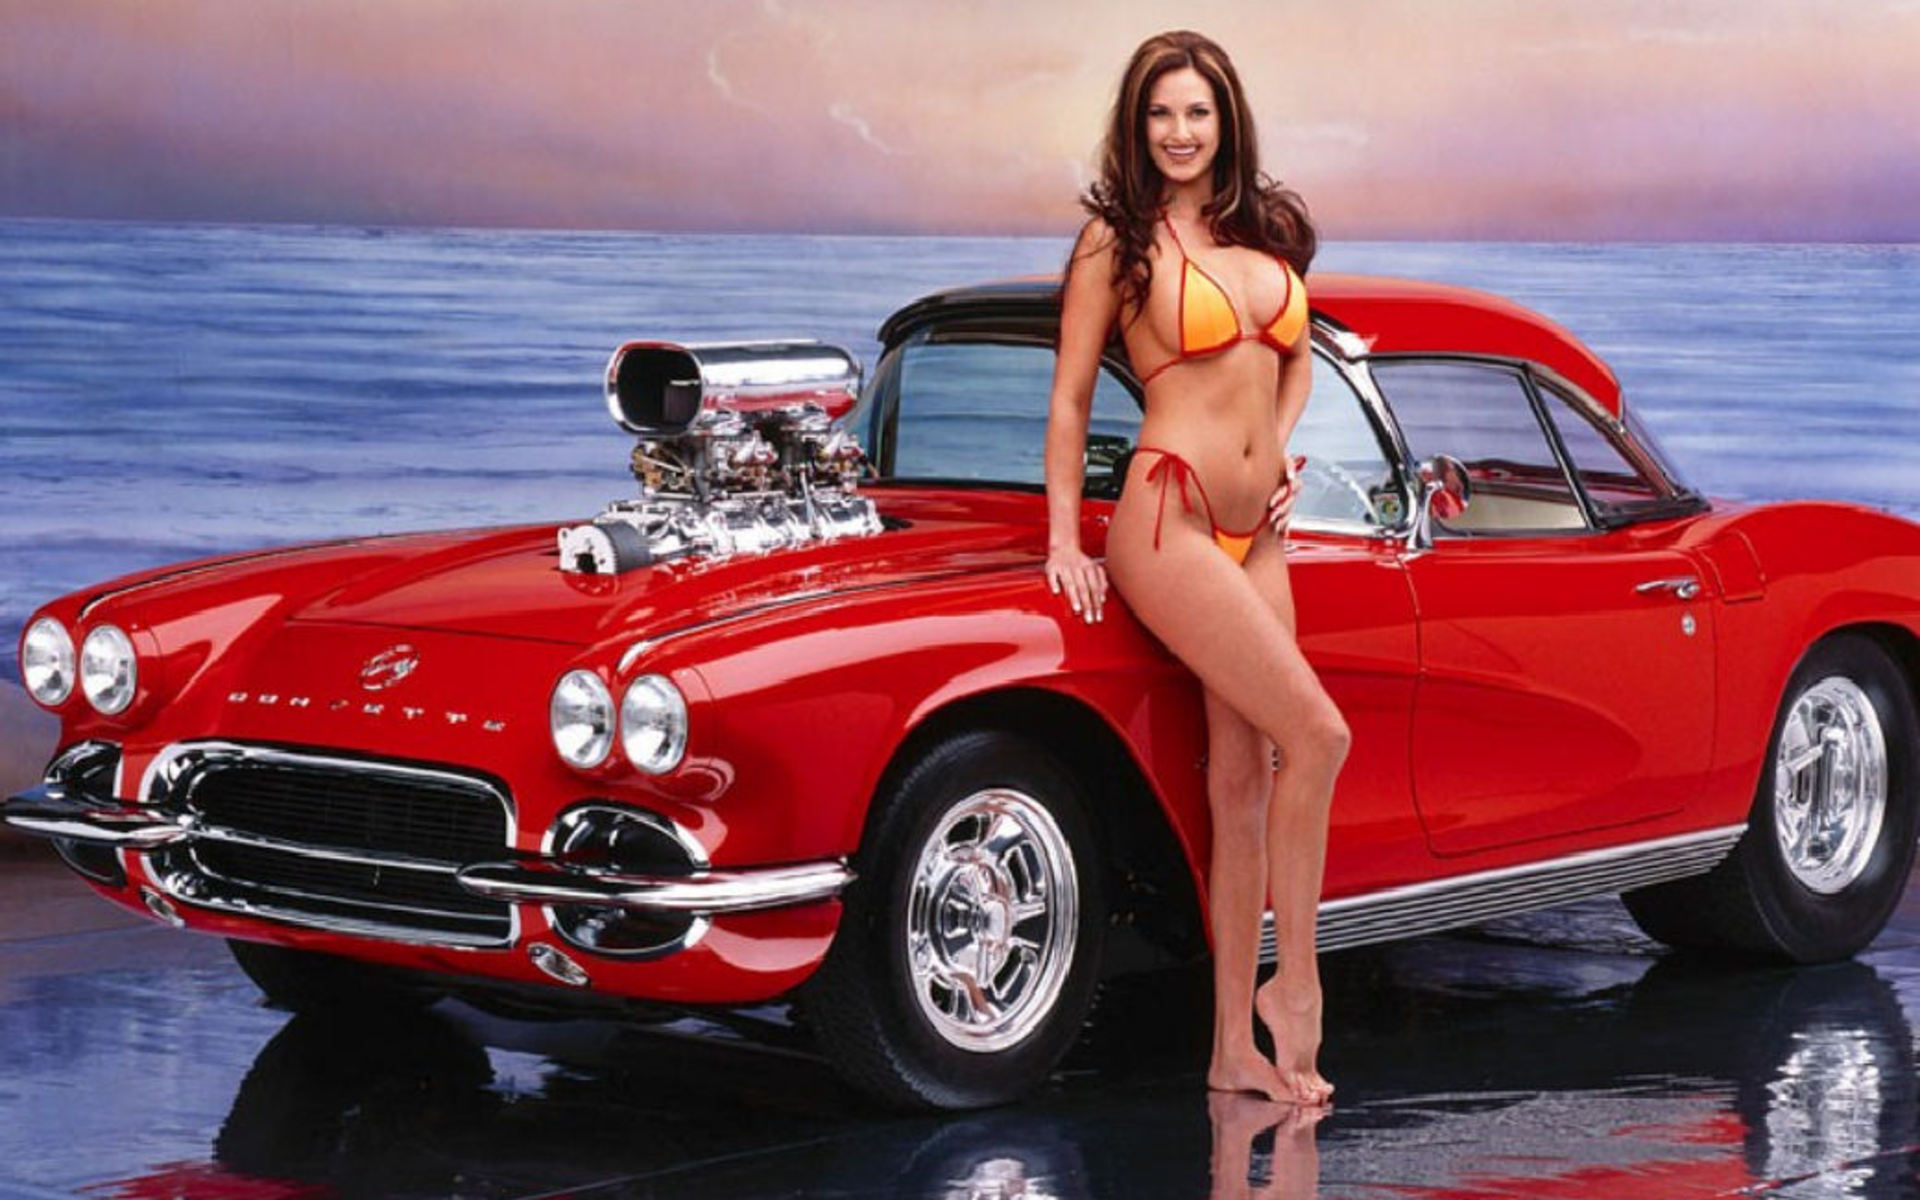 Nude muscle car babe seems